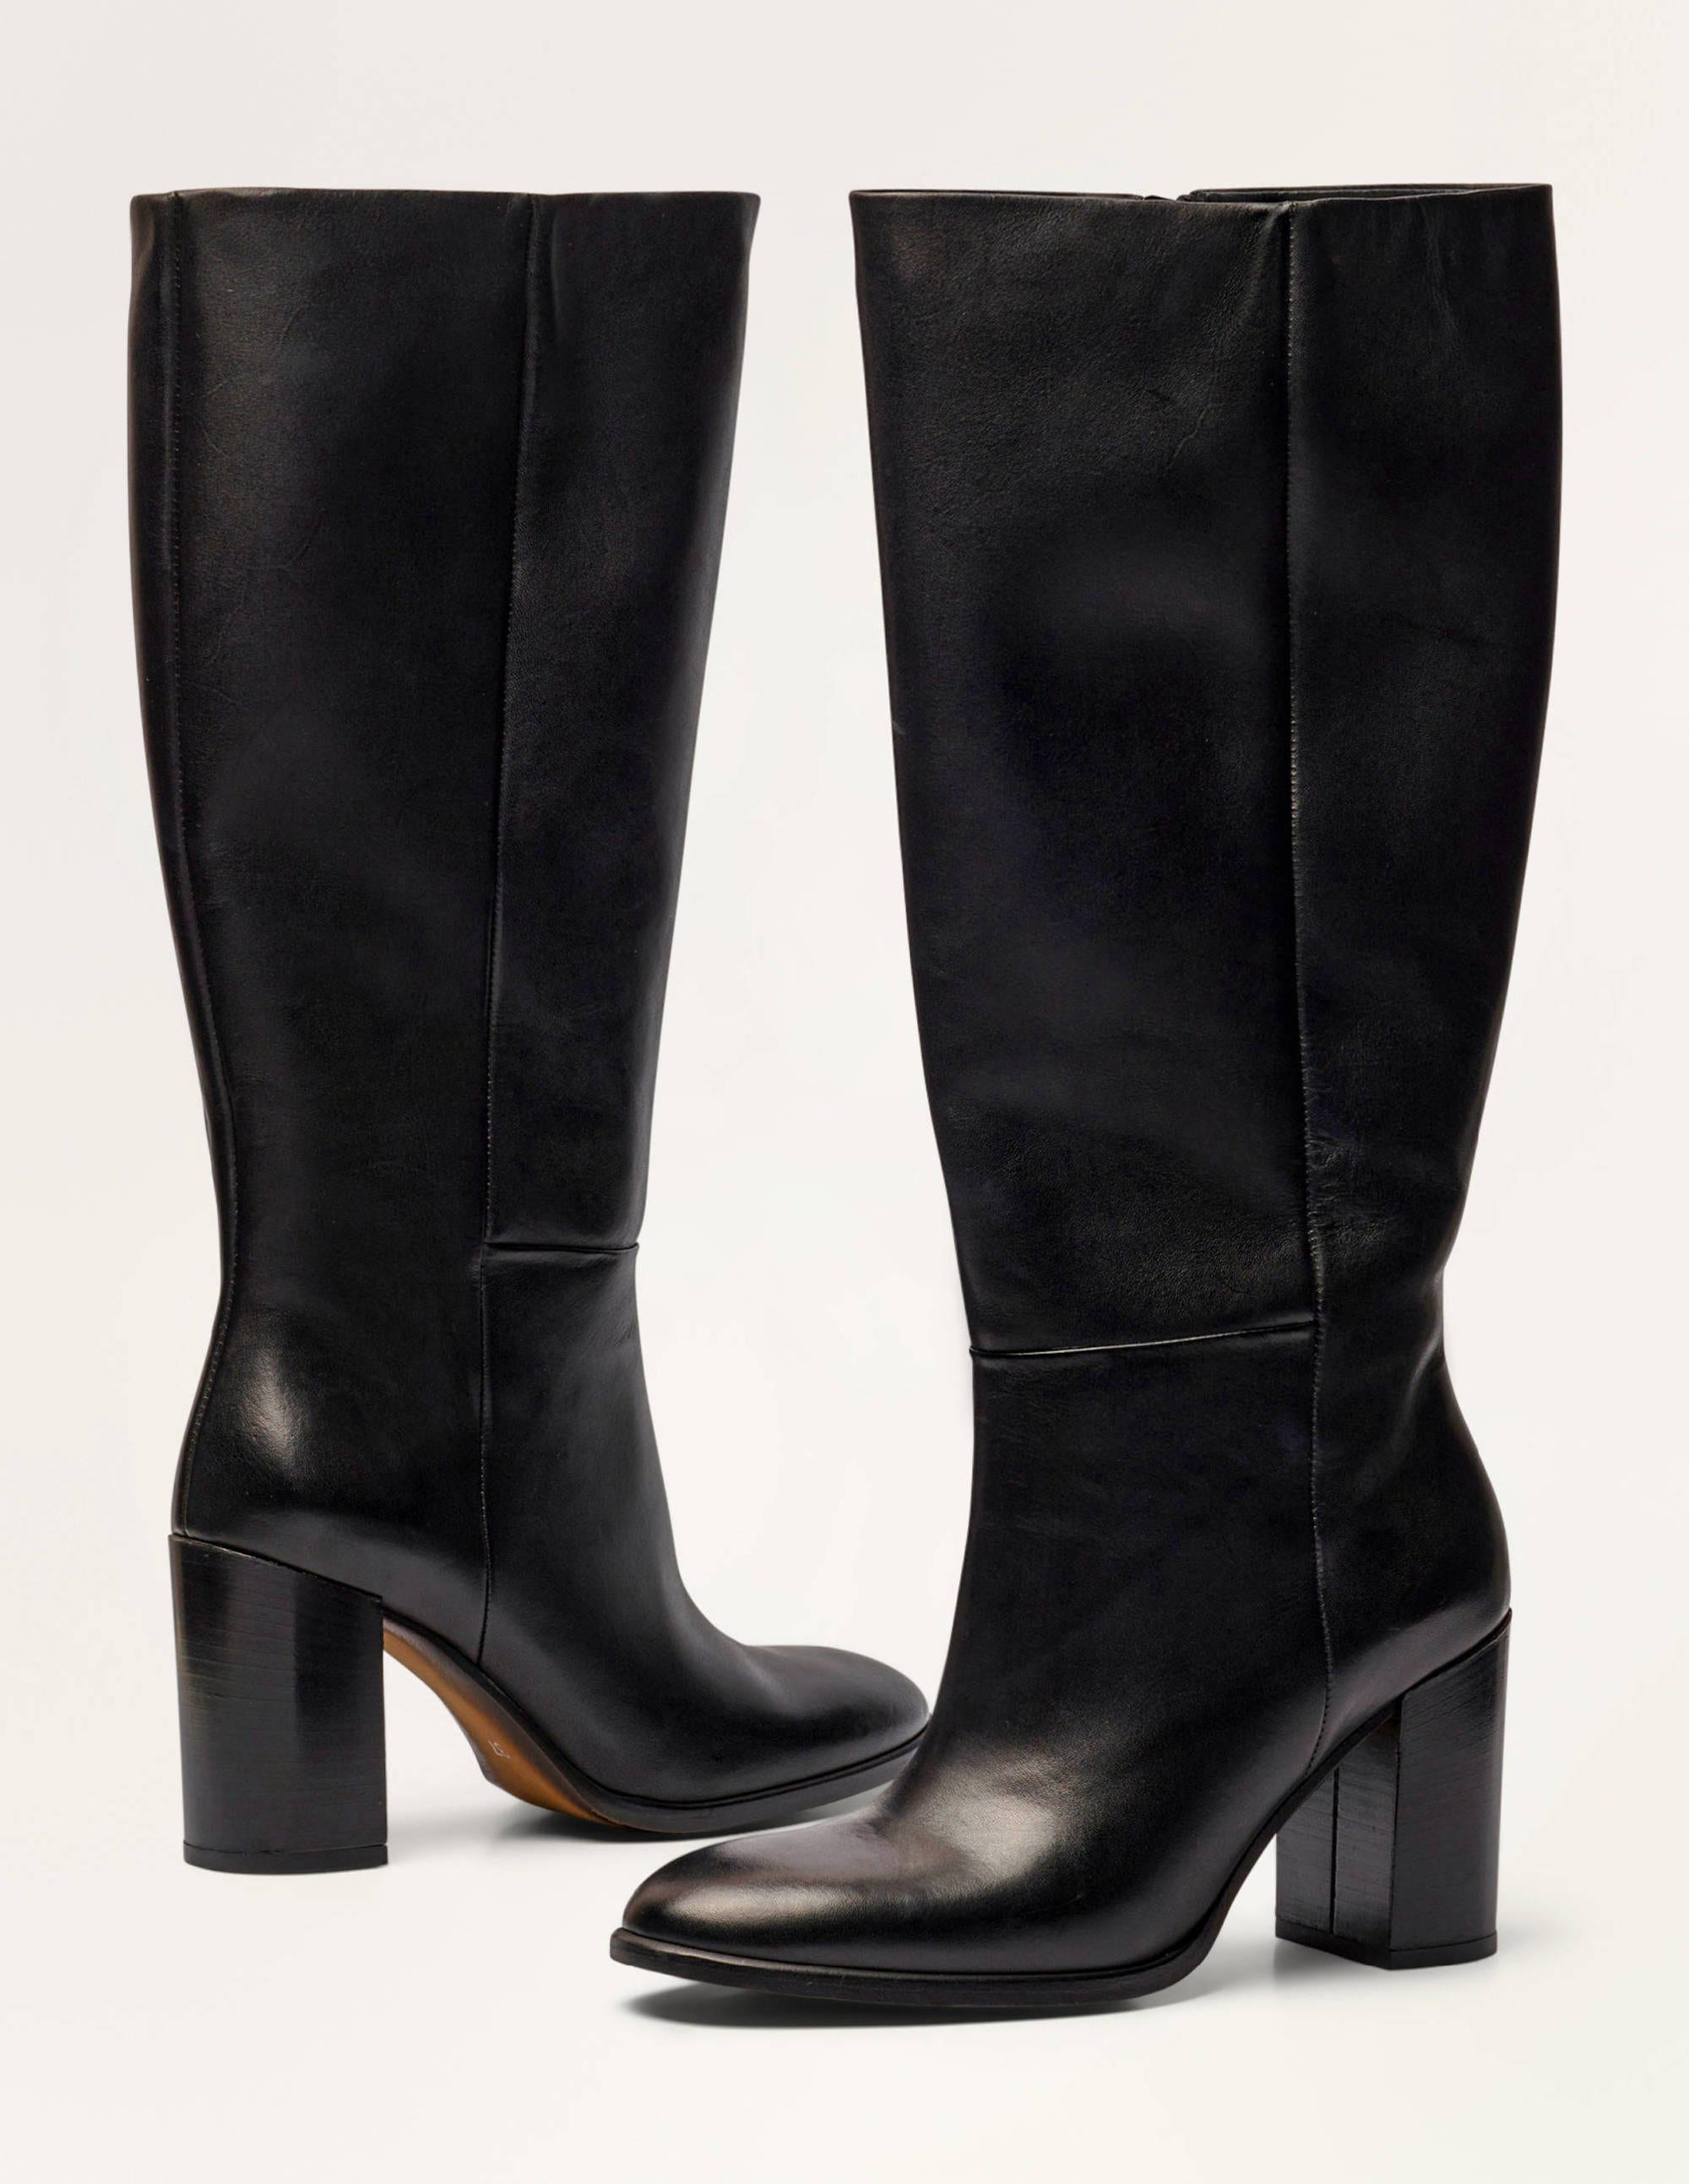 Chichester Knee High Boots - Black